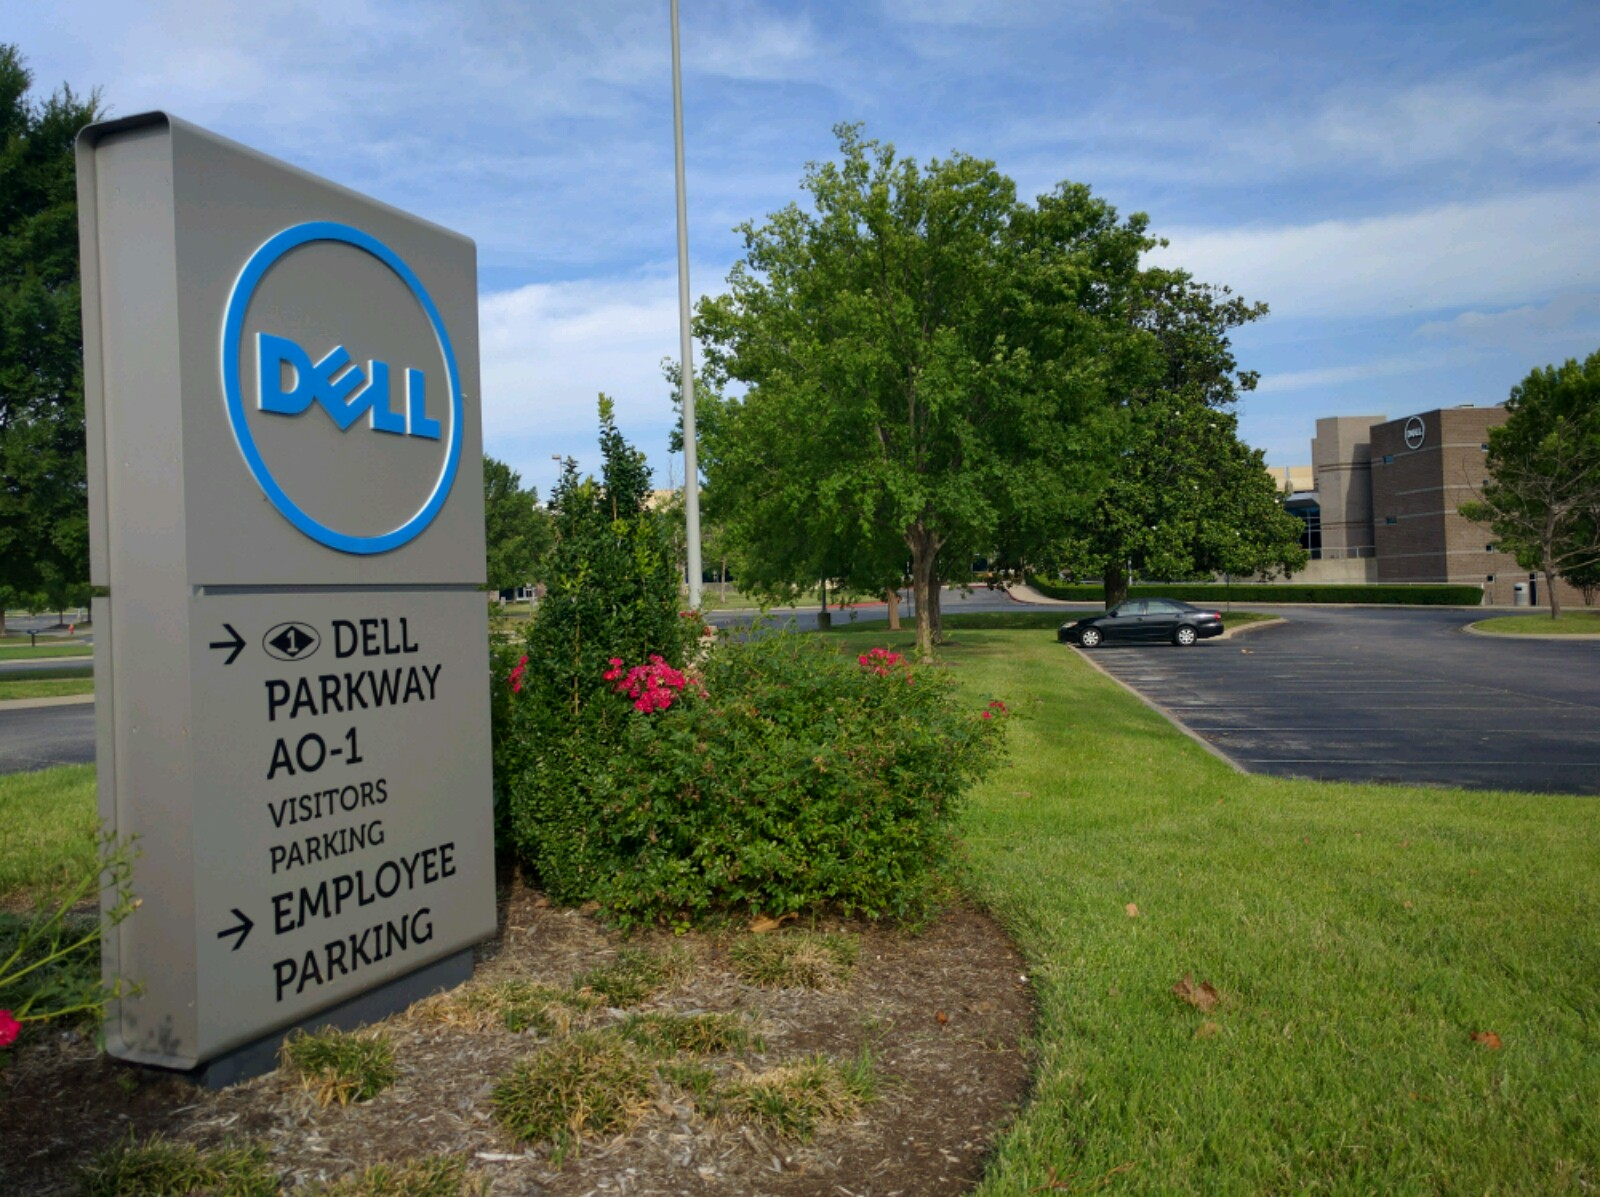 Dell office campus in Nashville, Tennessee.